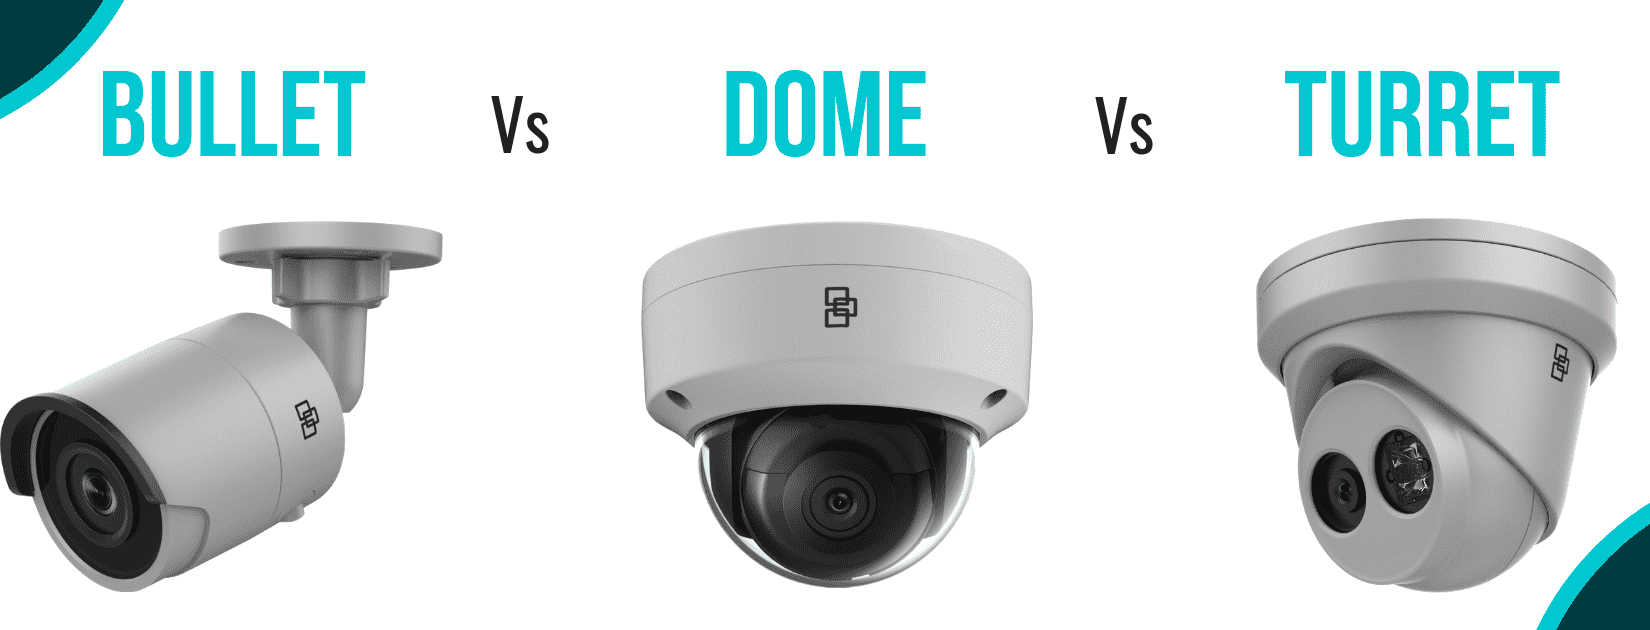 The Ultimate CCTV Security Surveillance Buying Guide in